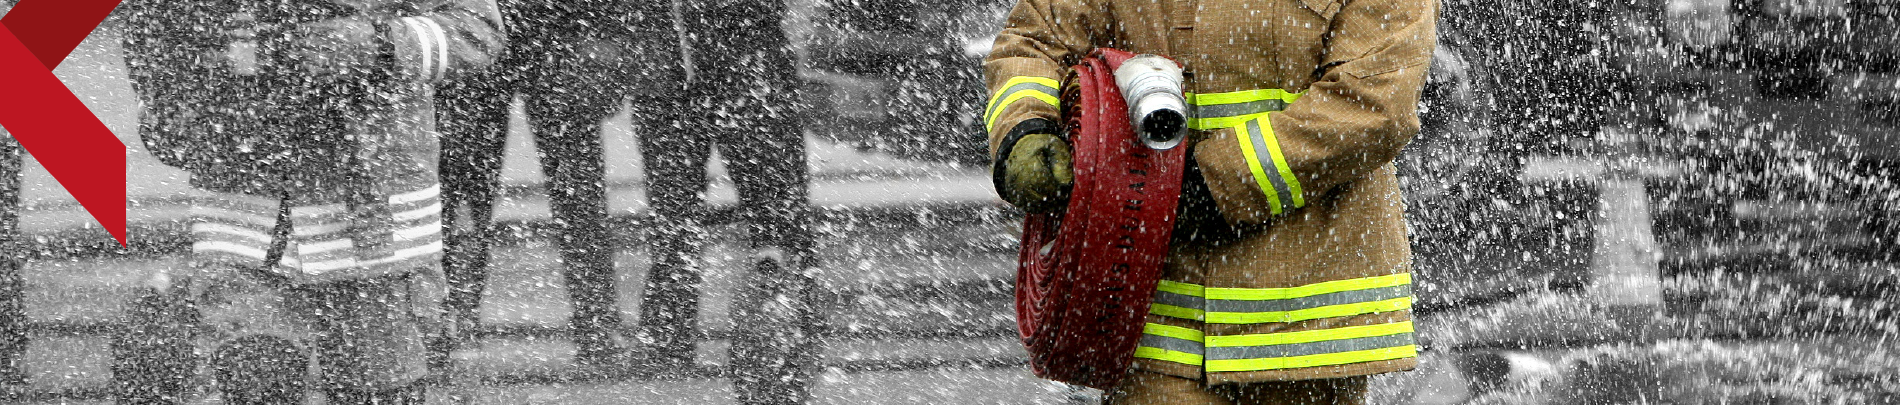 Firefighter carrying a hose